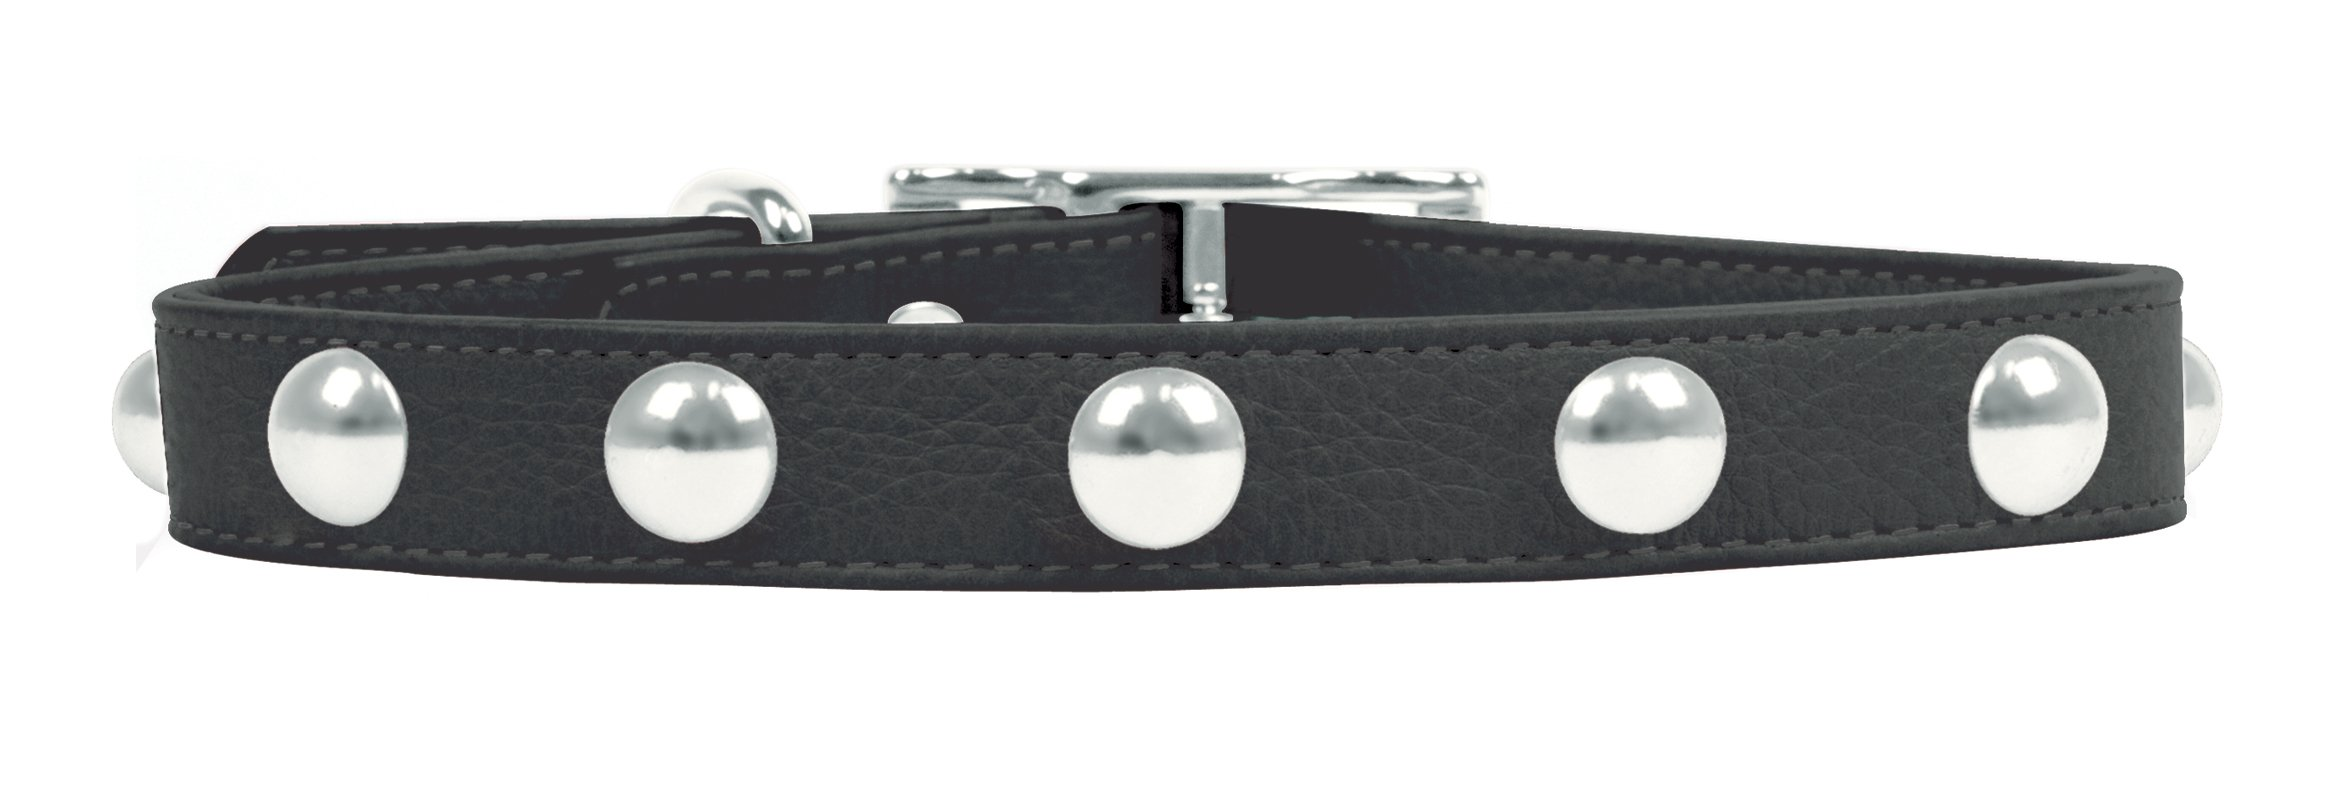 Rockin Doggie Domed Rivets Leather Dog Collar, 1 by 20-Inch, Black